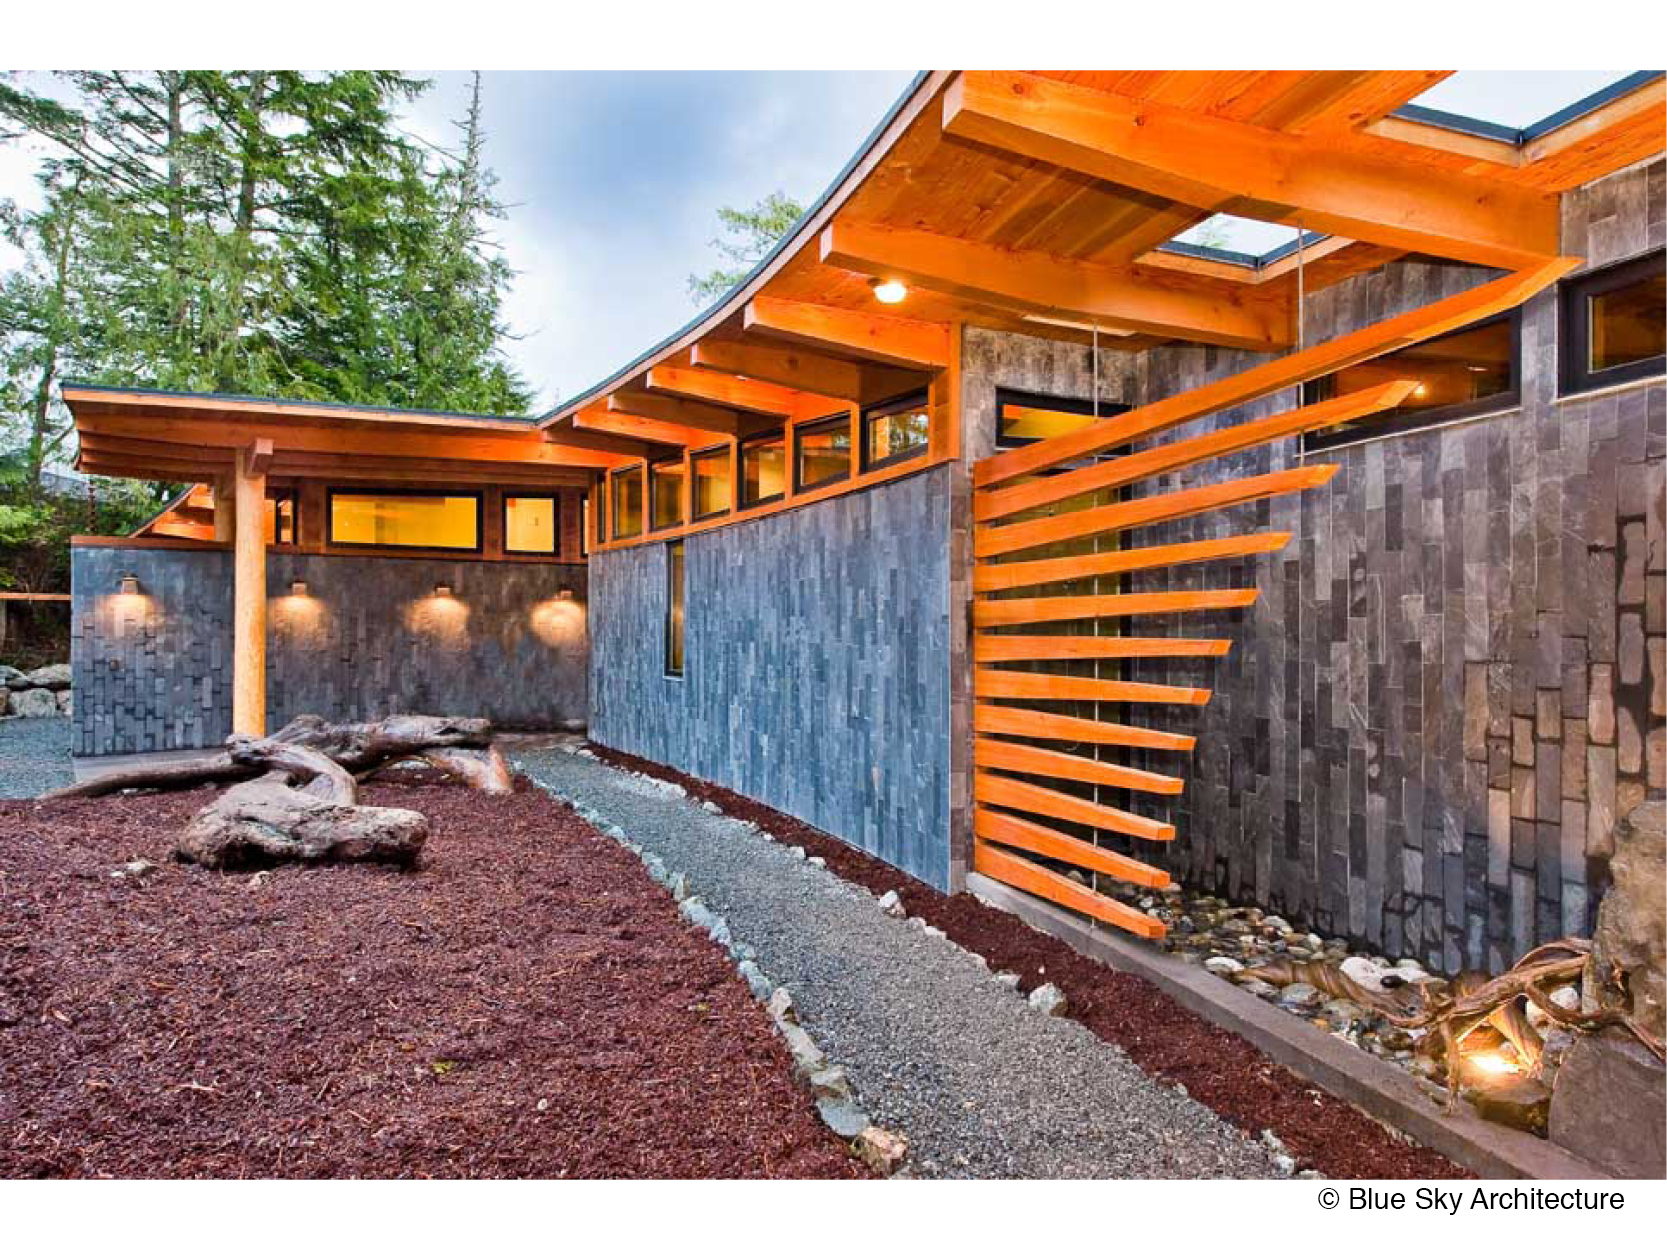 Exterior of a West Coast Modern, forest residence